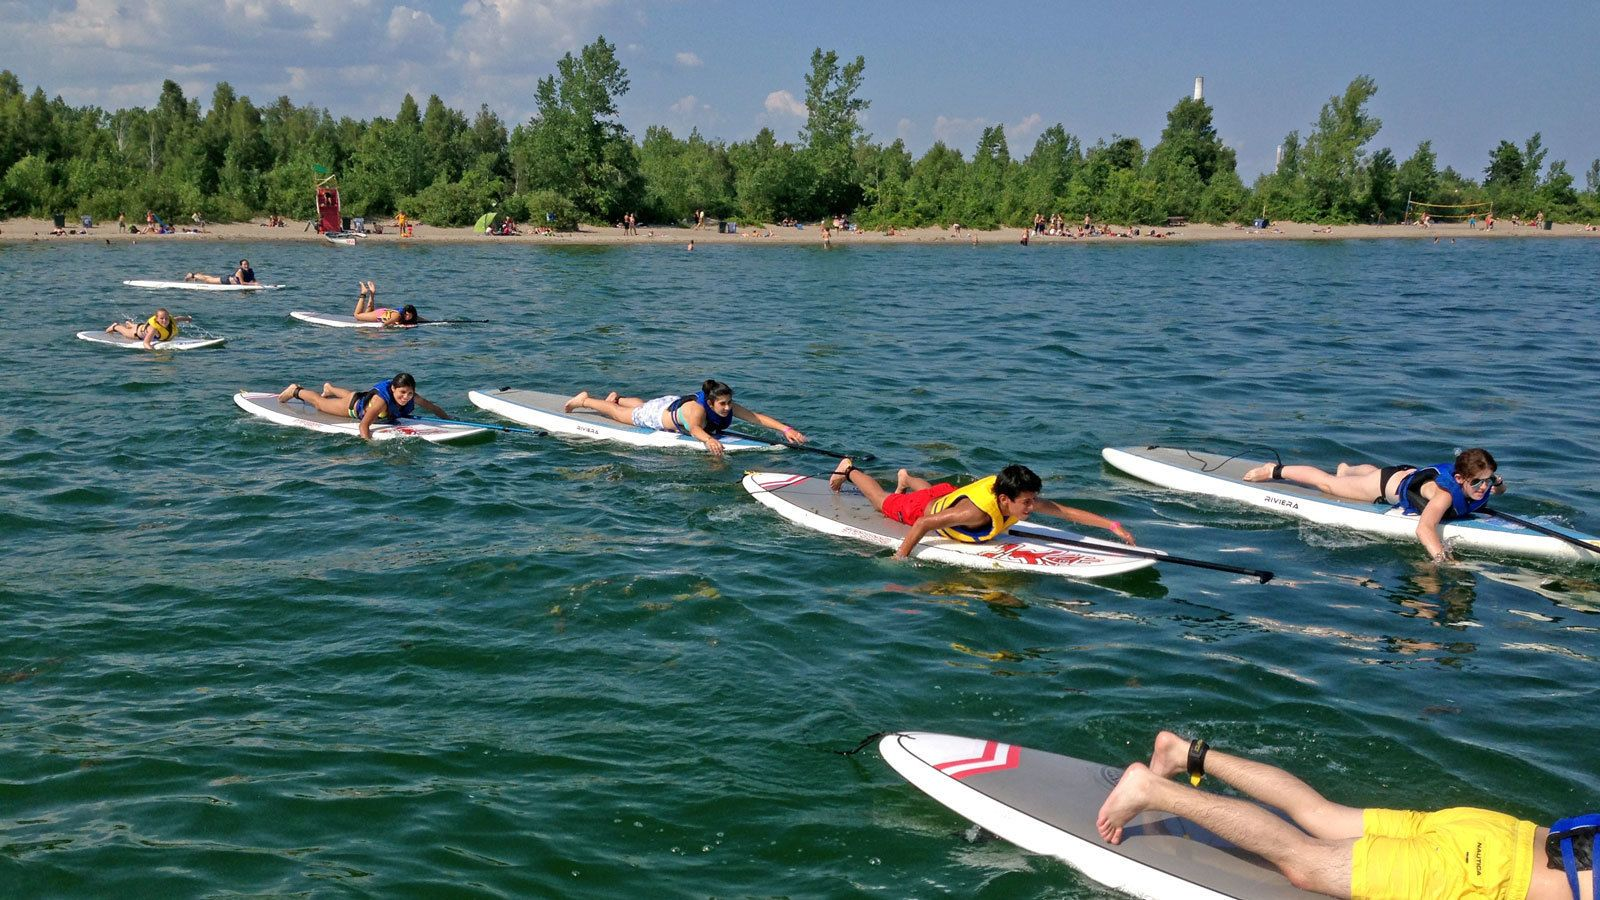 paddling while laying flat on paddleboards in Toronto